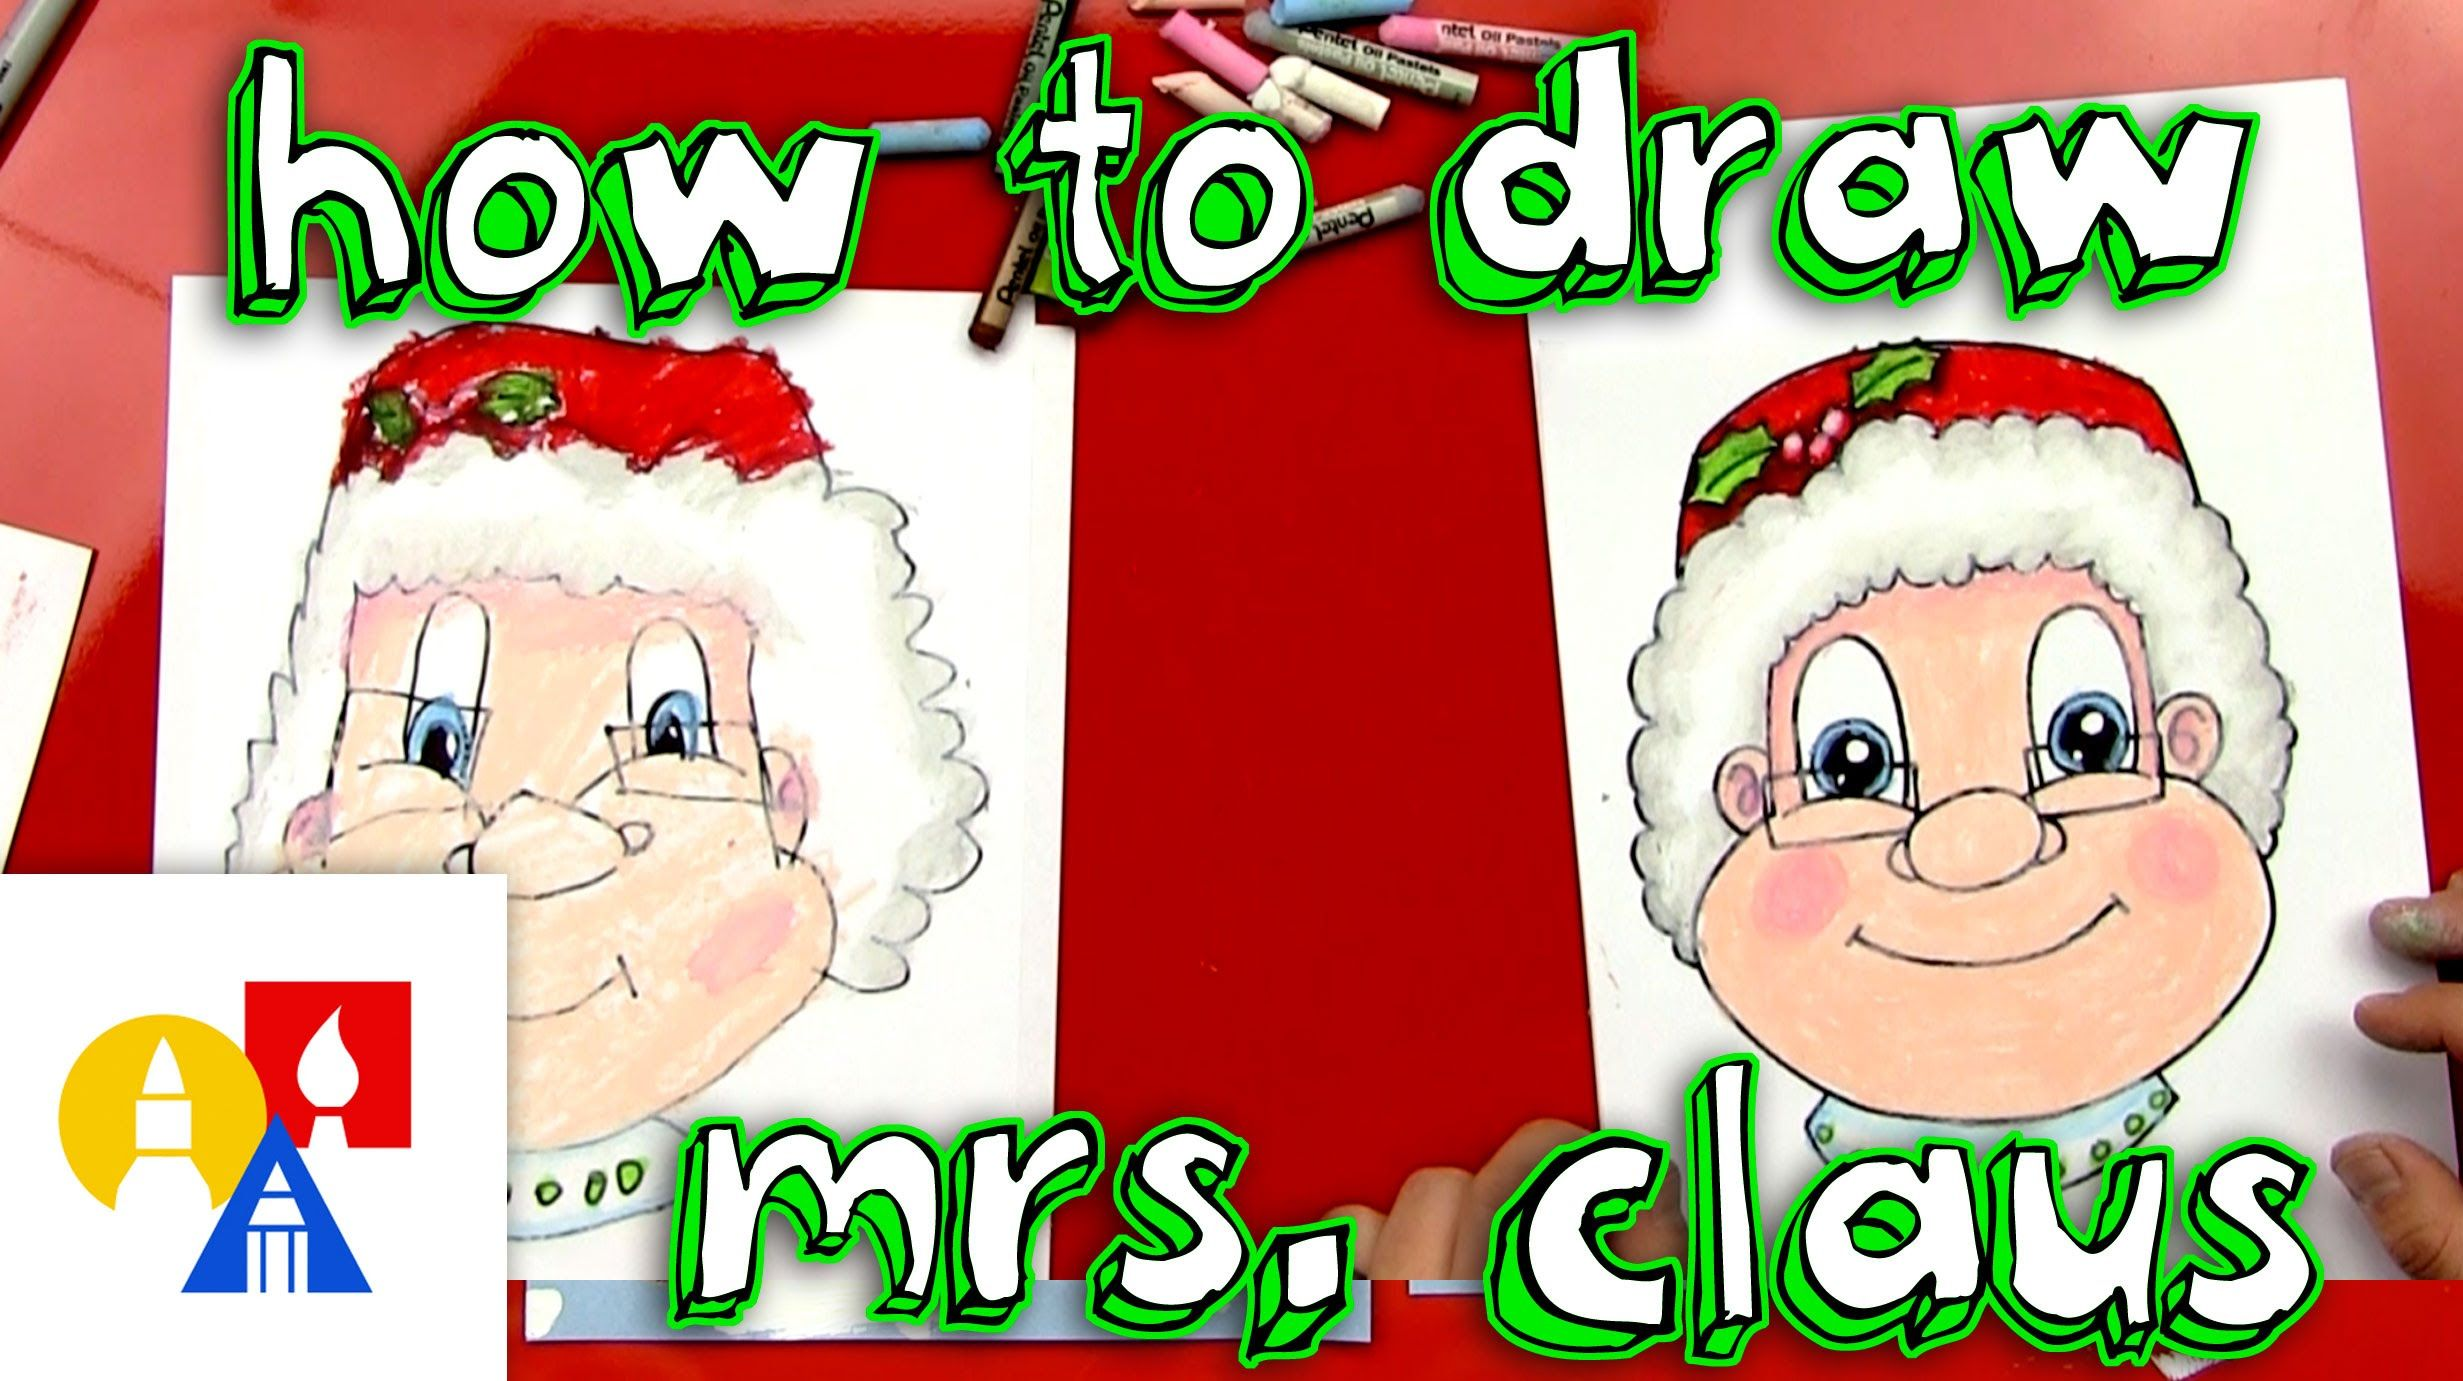 How To Draw Mrs Claus | Art for kids hub, Art for kids, How to draw santa